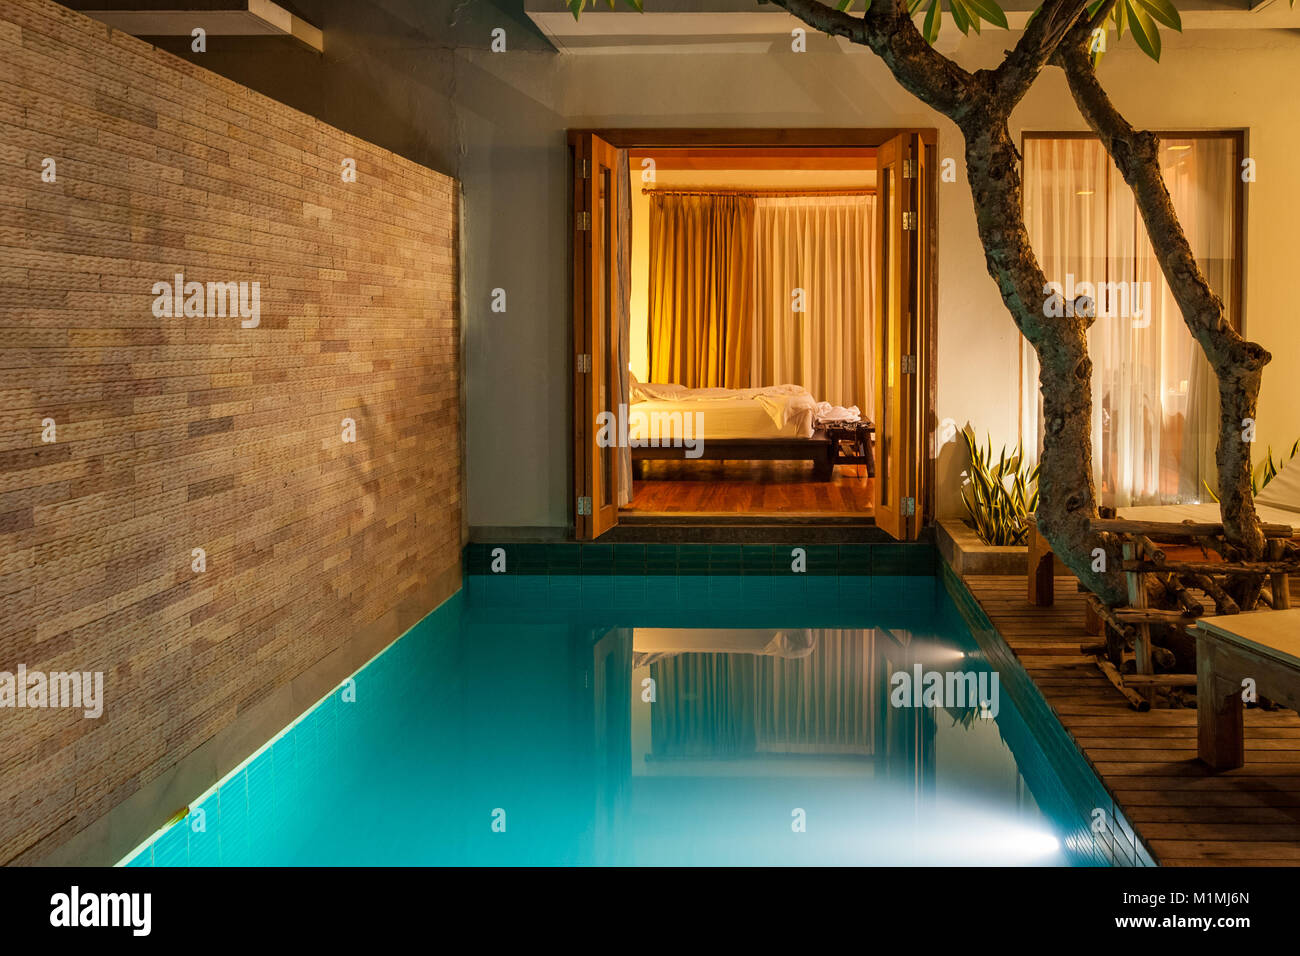 A Night Shot Of A Pool Villa Which Has A Garden With A Swimming Pool Stock Photo Alamy